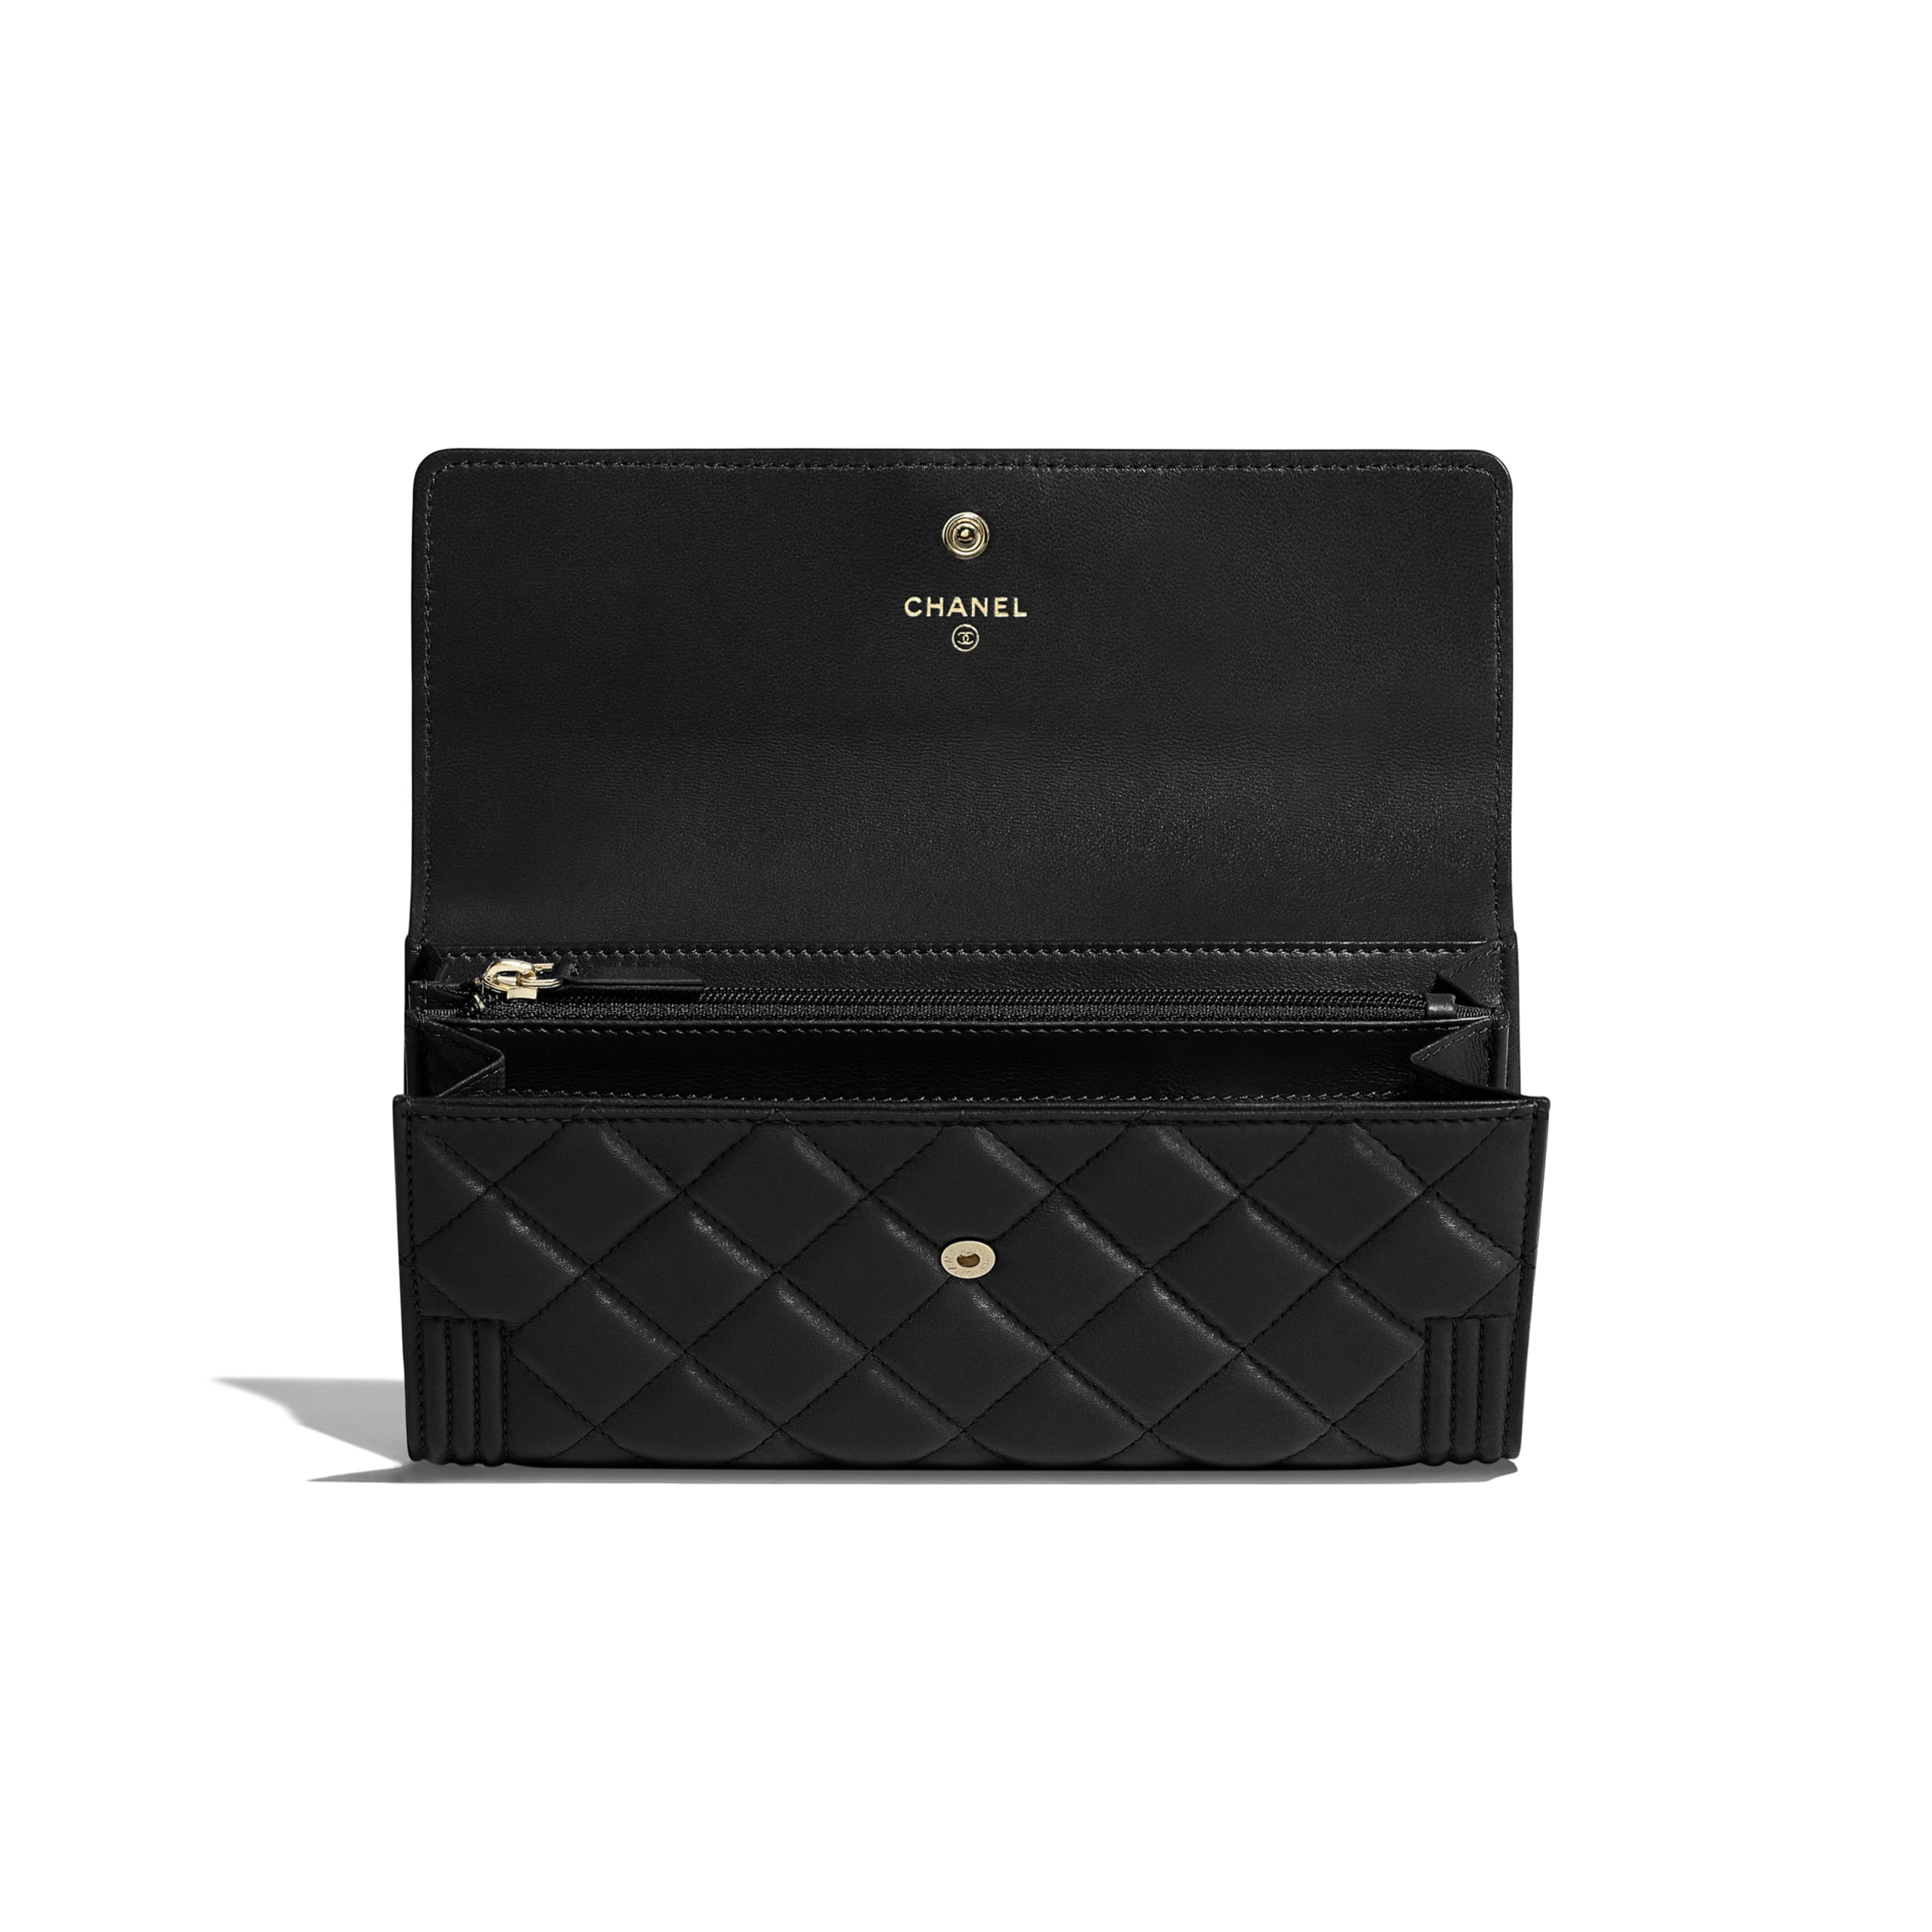 BOY CHANEL Long Flap Wallet - Black - Lambskin - CHANEL - Other view - see standard sized version